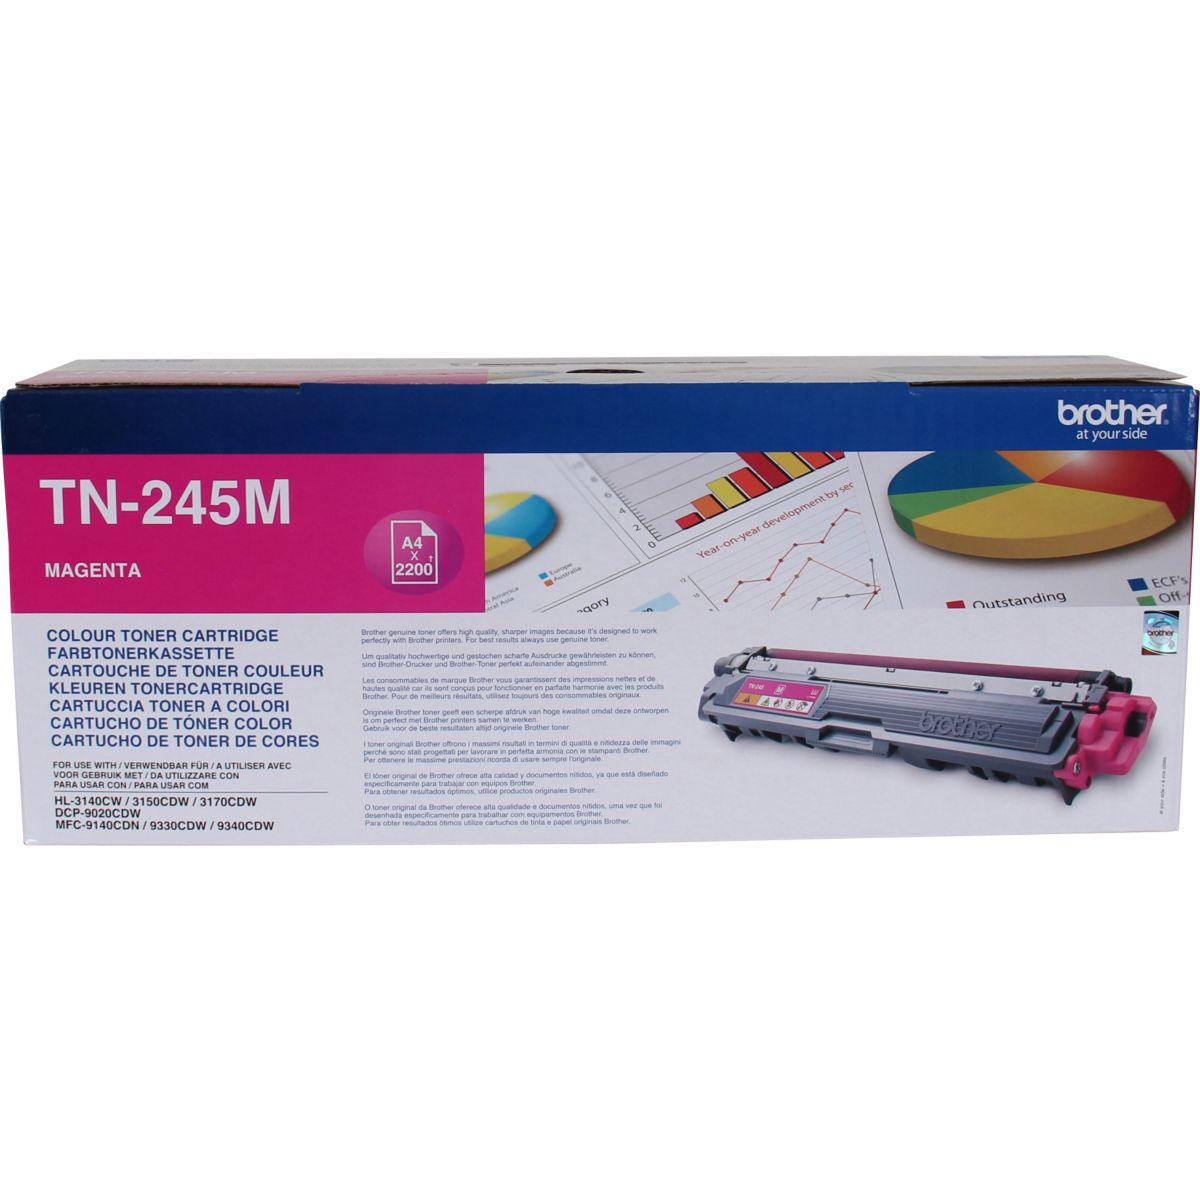 Toner brother tn245 magenta xl - 2% de remise imm�diate avec le code : deal2